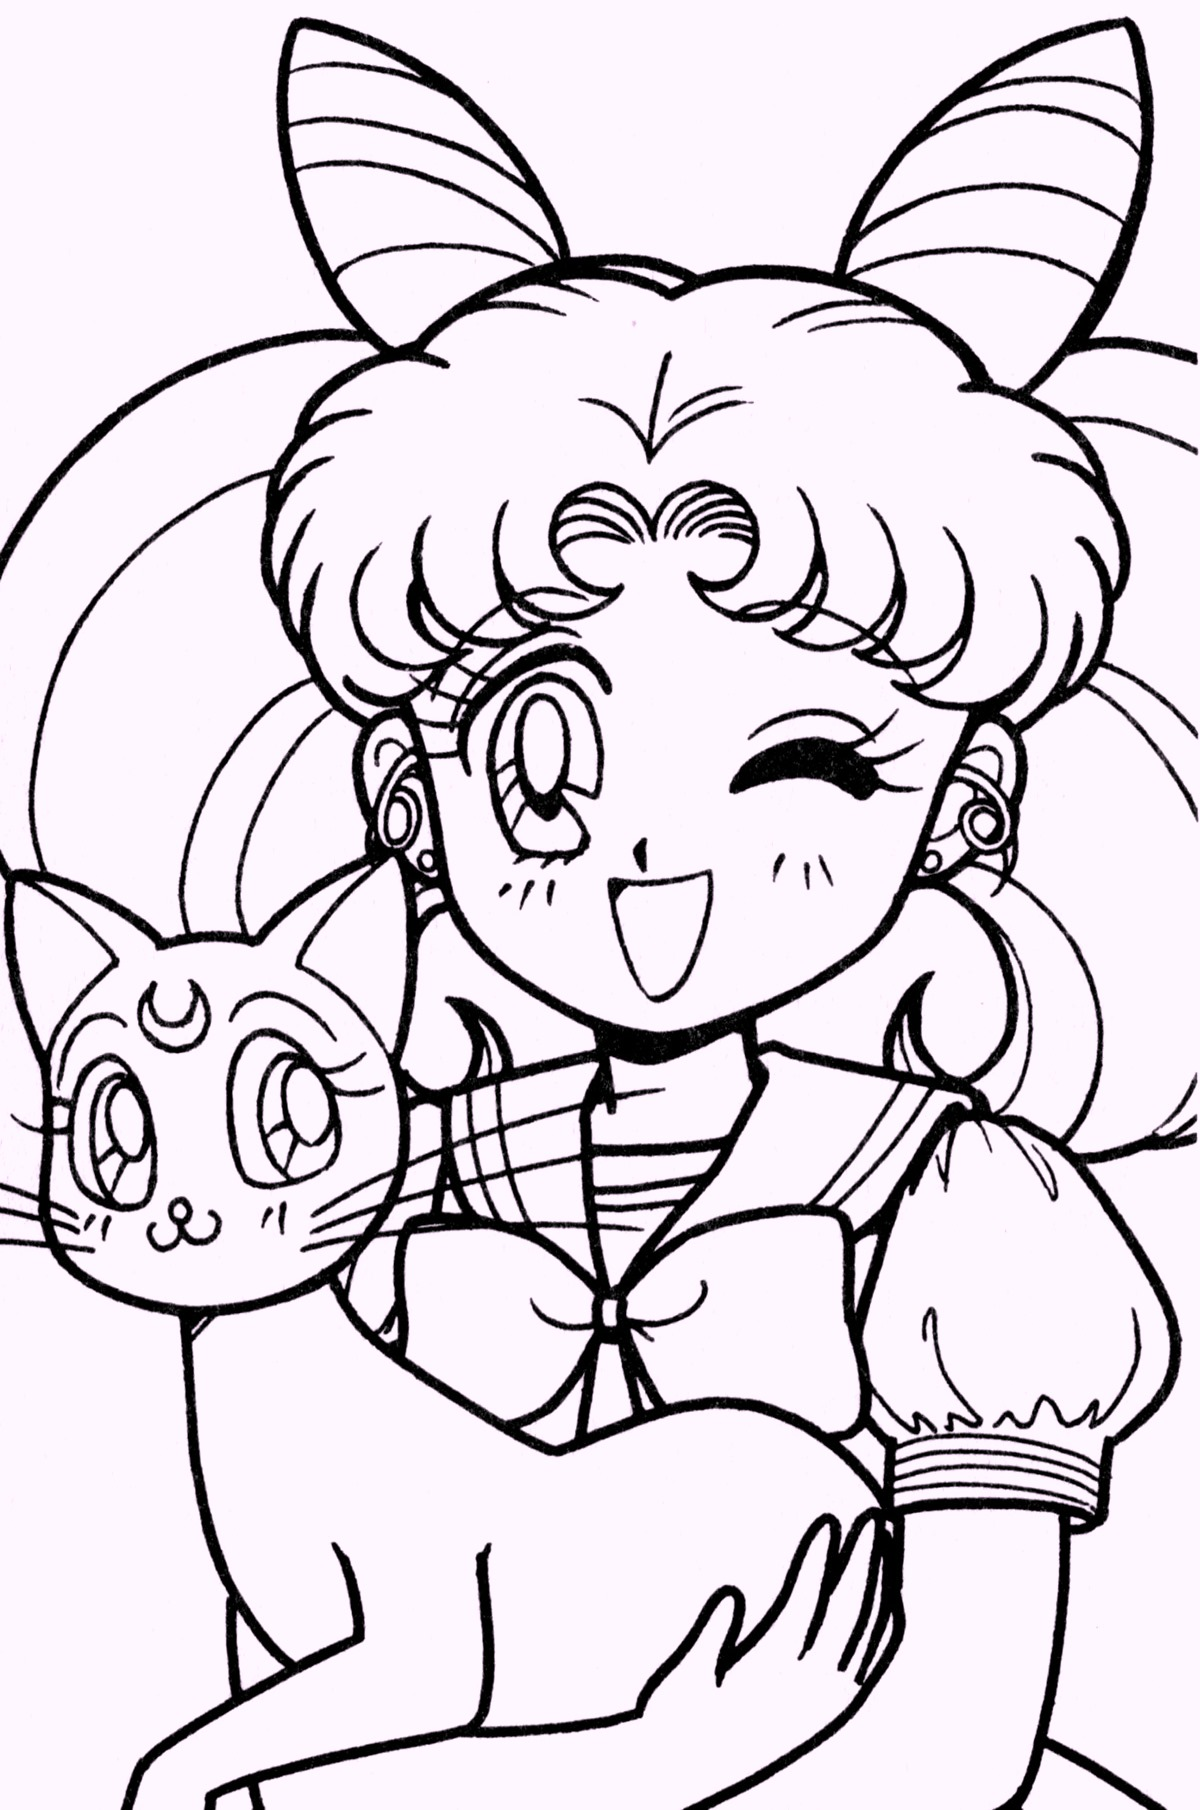 Chibi sailor moon coloring for Coloring pages sailor moon